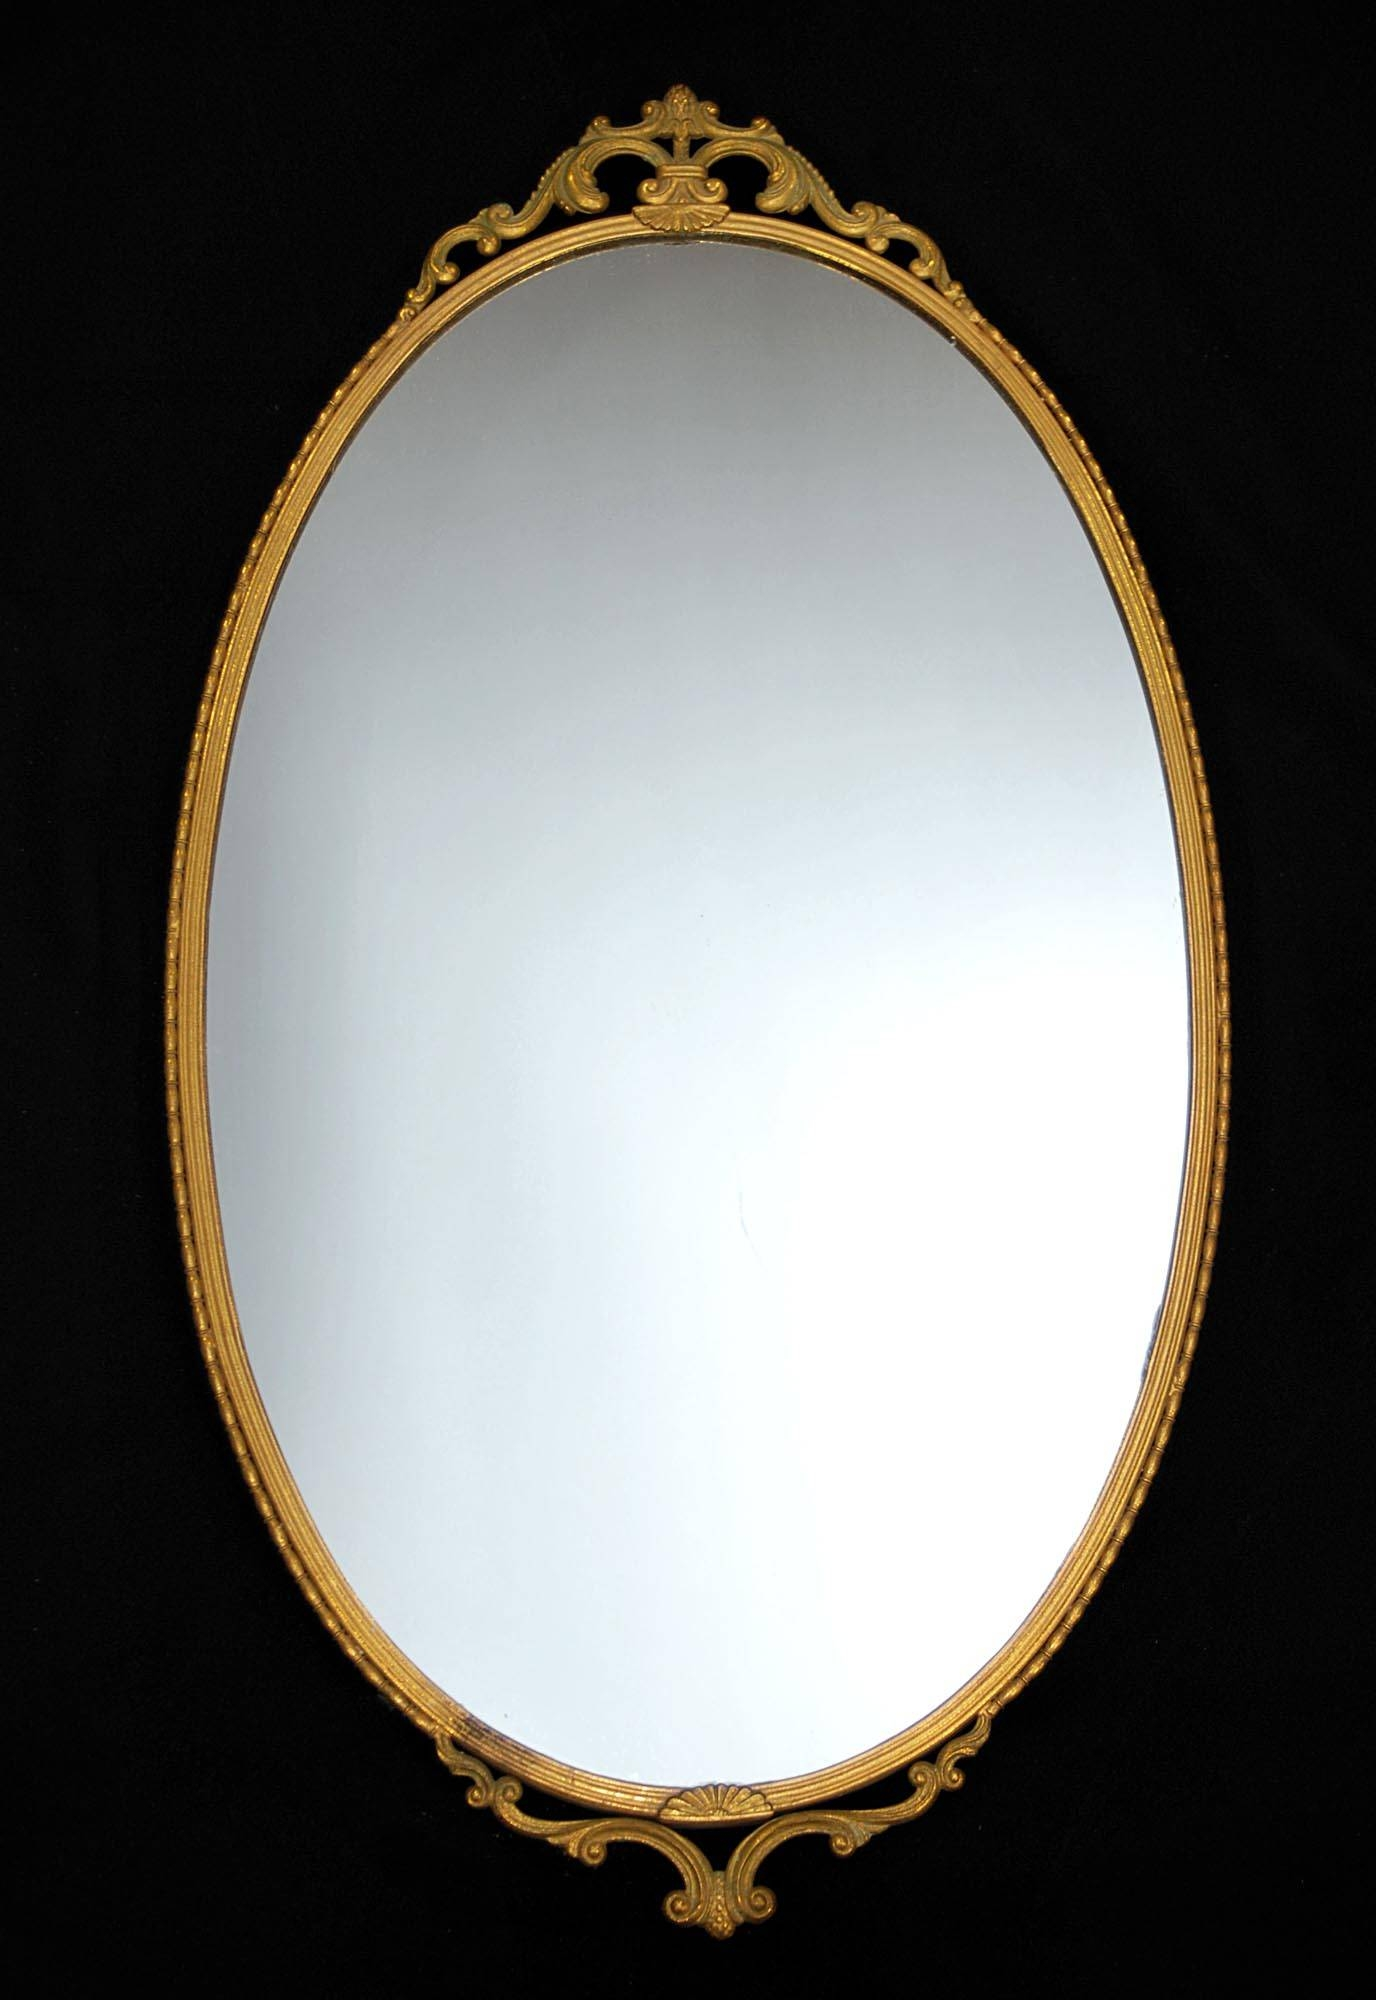 Oval Mirror With Golden Steel Frame Placed On The Black Wall Of with regard to Black Oval Wall Mirrors (Image 15 of 25)